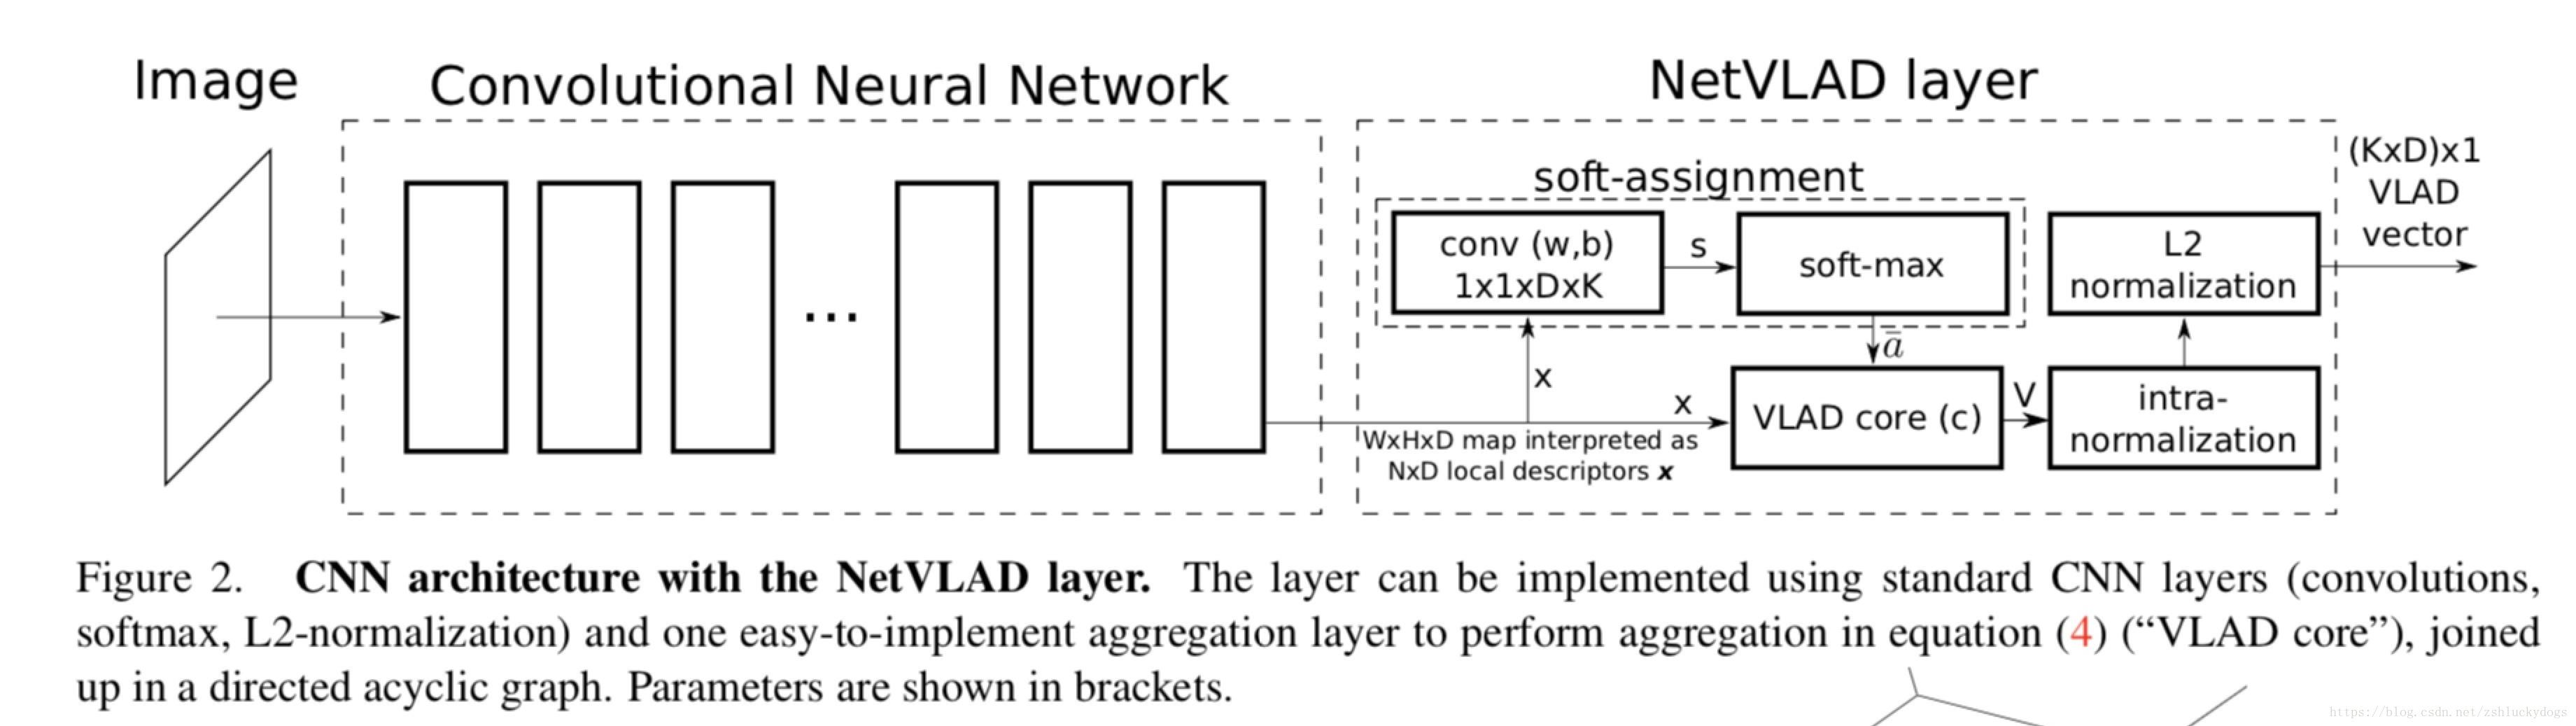 place recognition]NetVLAD: CNN architecture for weakly